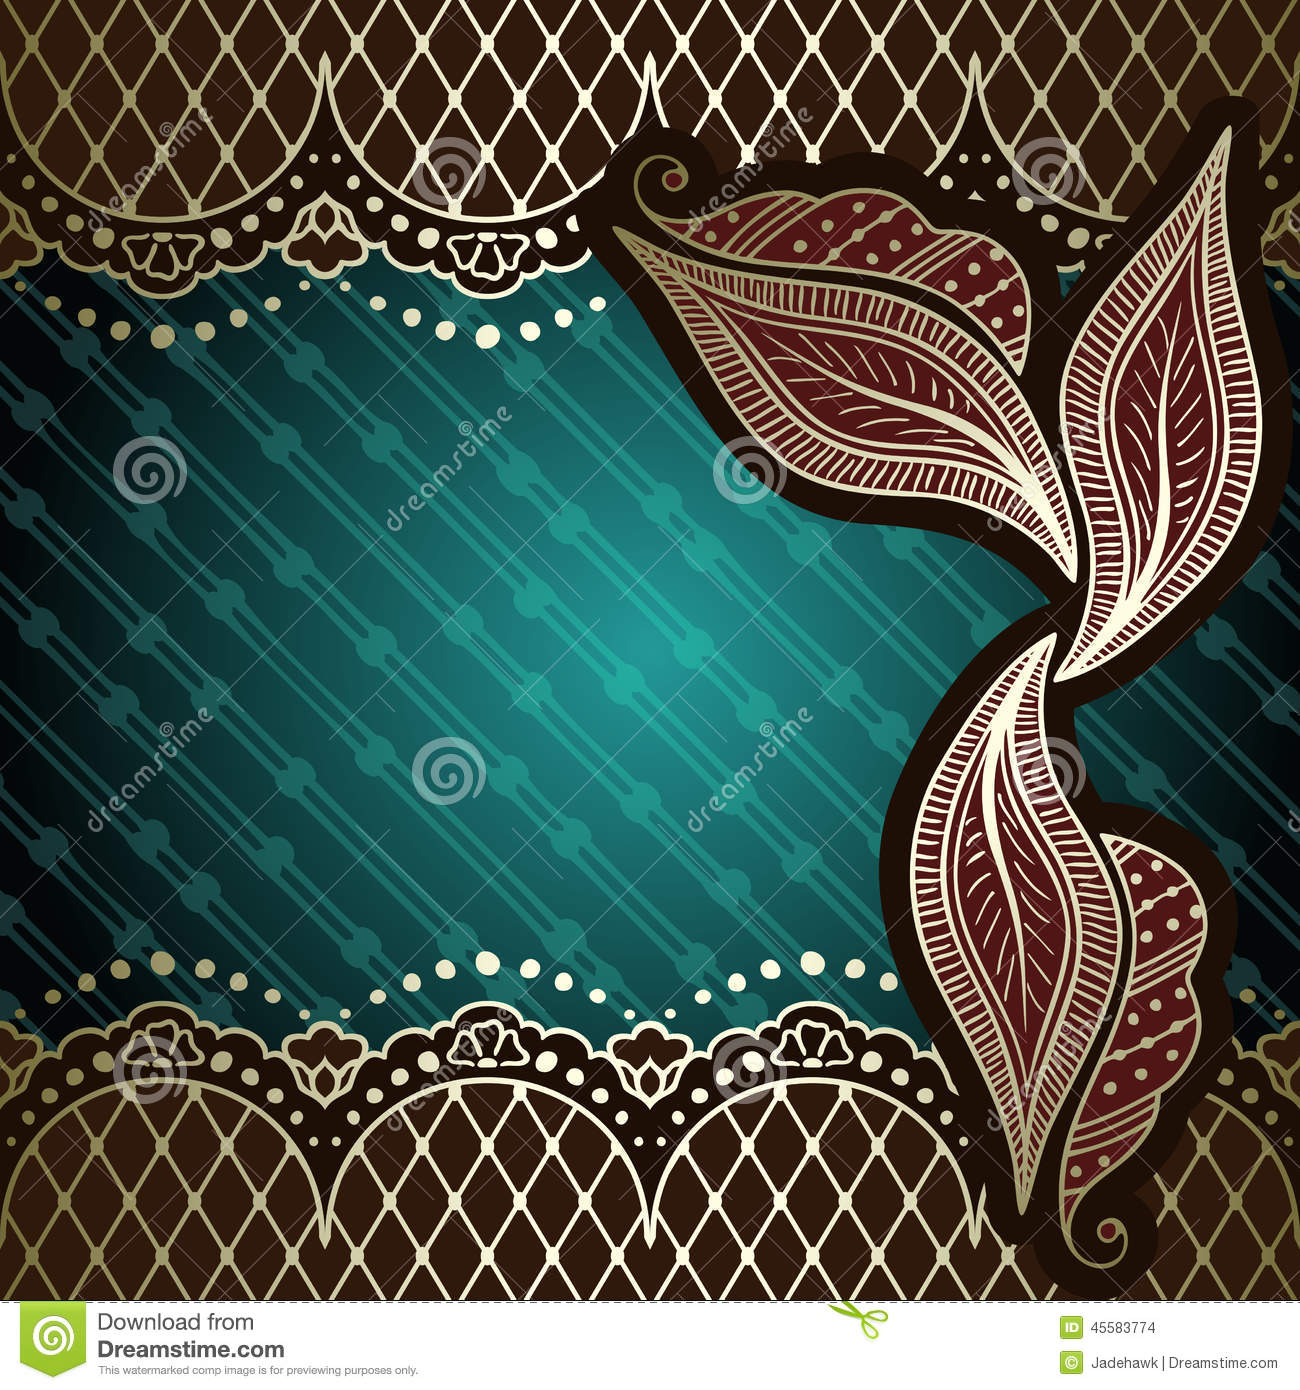 Mehndi Backdrop Ideas : Green gold background inspired by indian mehndi stock